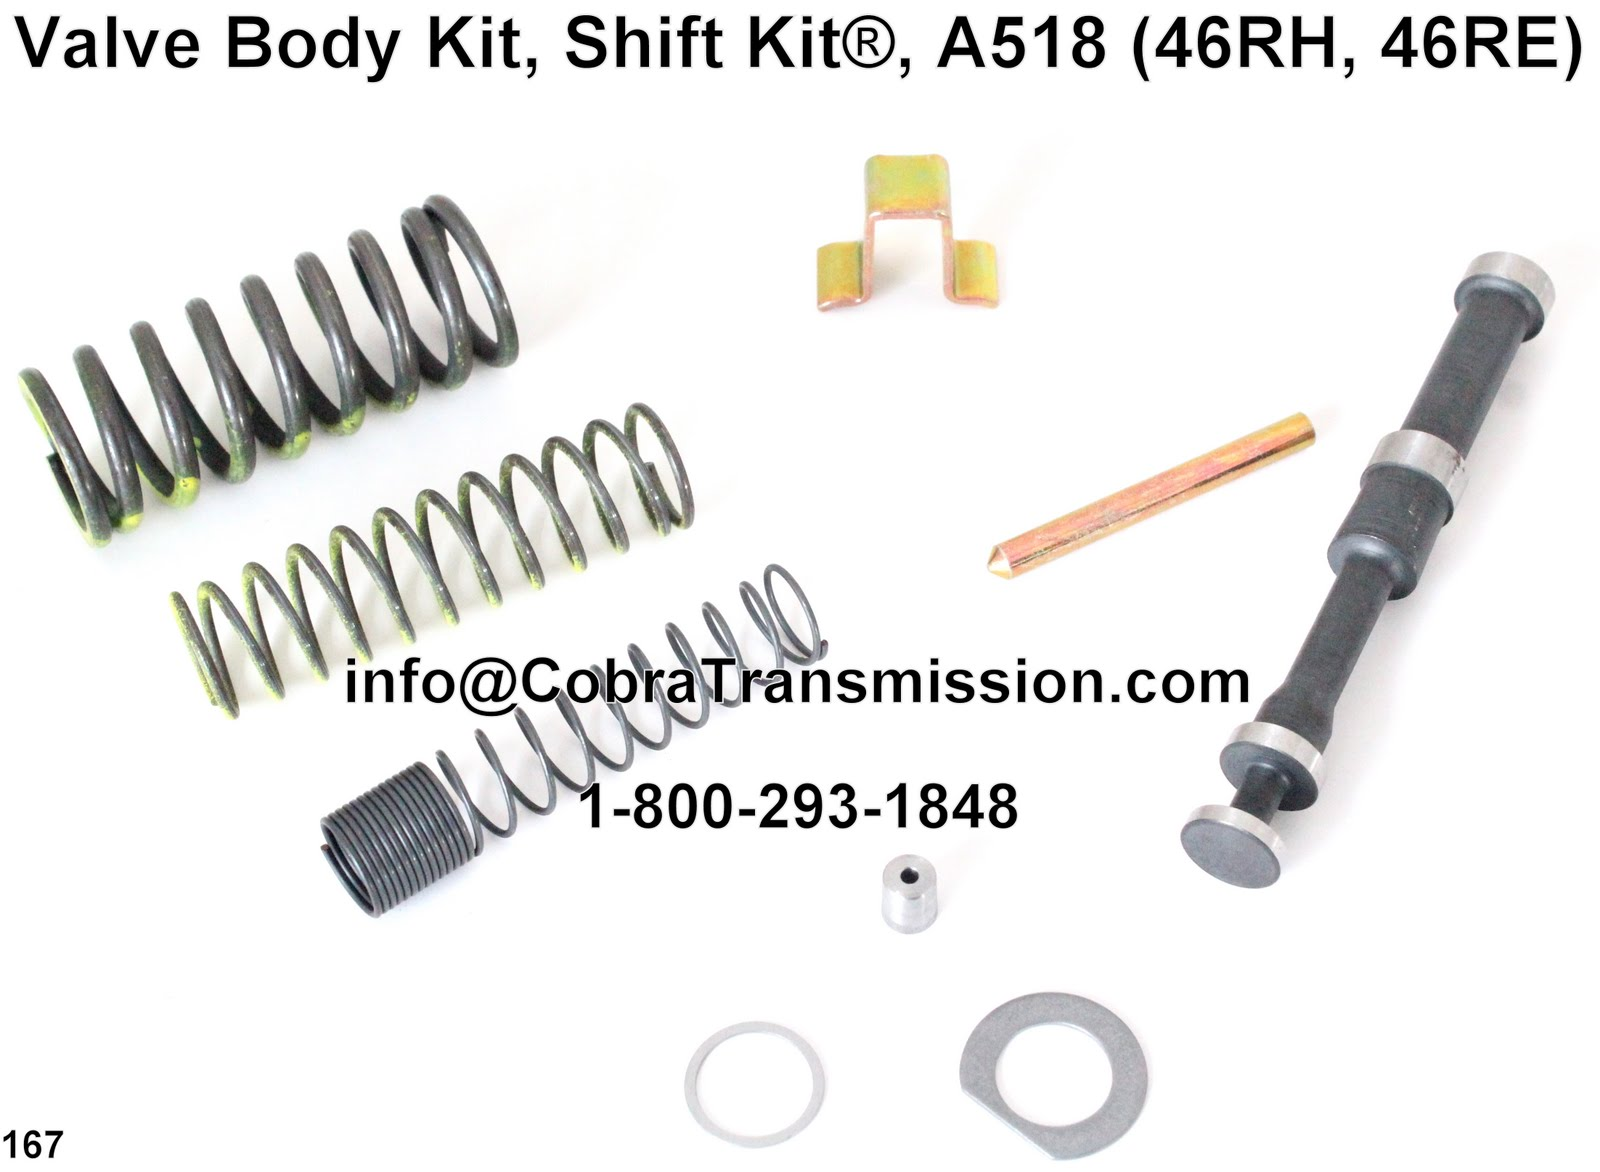 48re Transmission Parts Diagram 2005 Dodge Ram Wiring Valve Body Shift Kit A Dakota Durango Pickup Van Wagon Trany